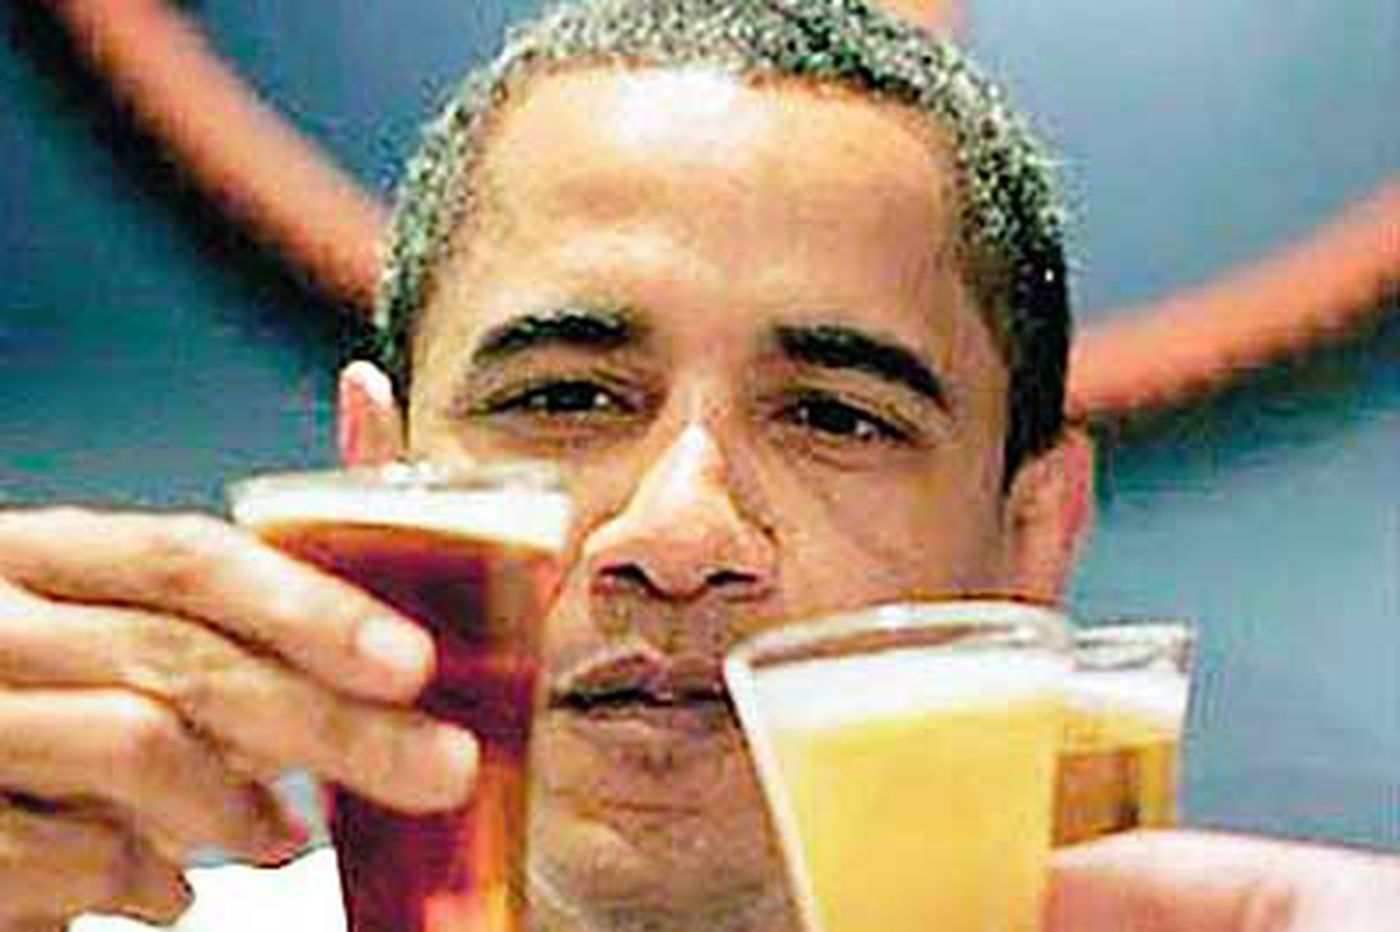 Joe Sixpack: Craft-beer drinkers to decide election